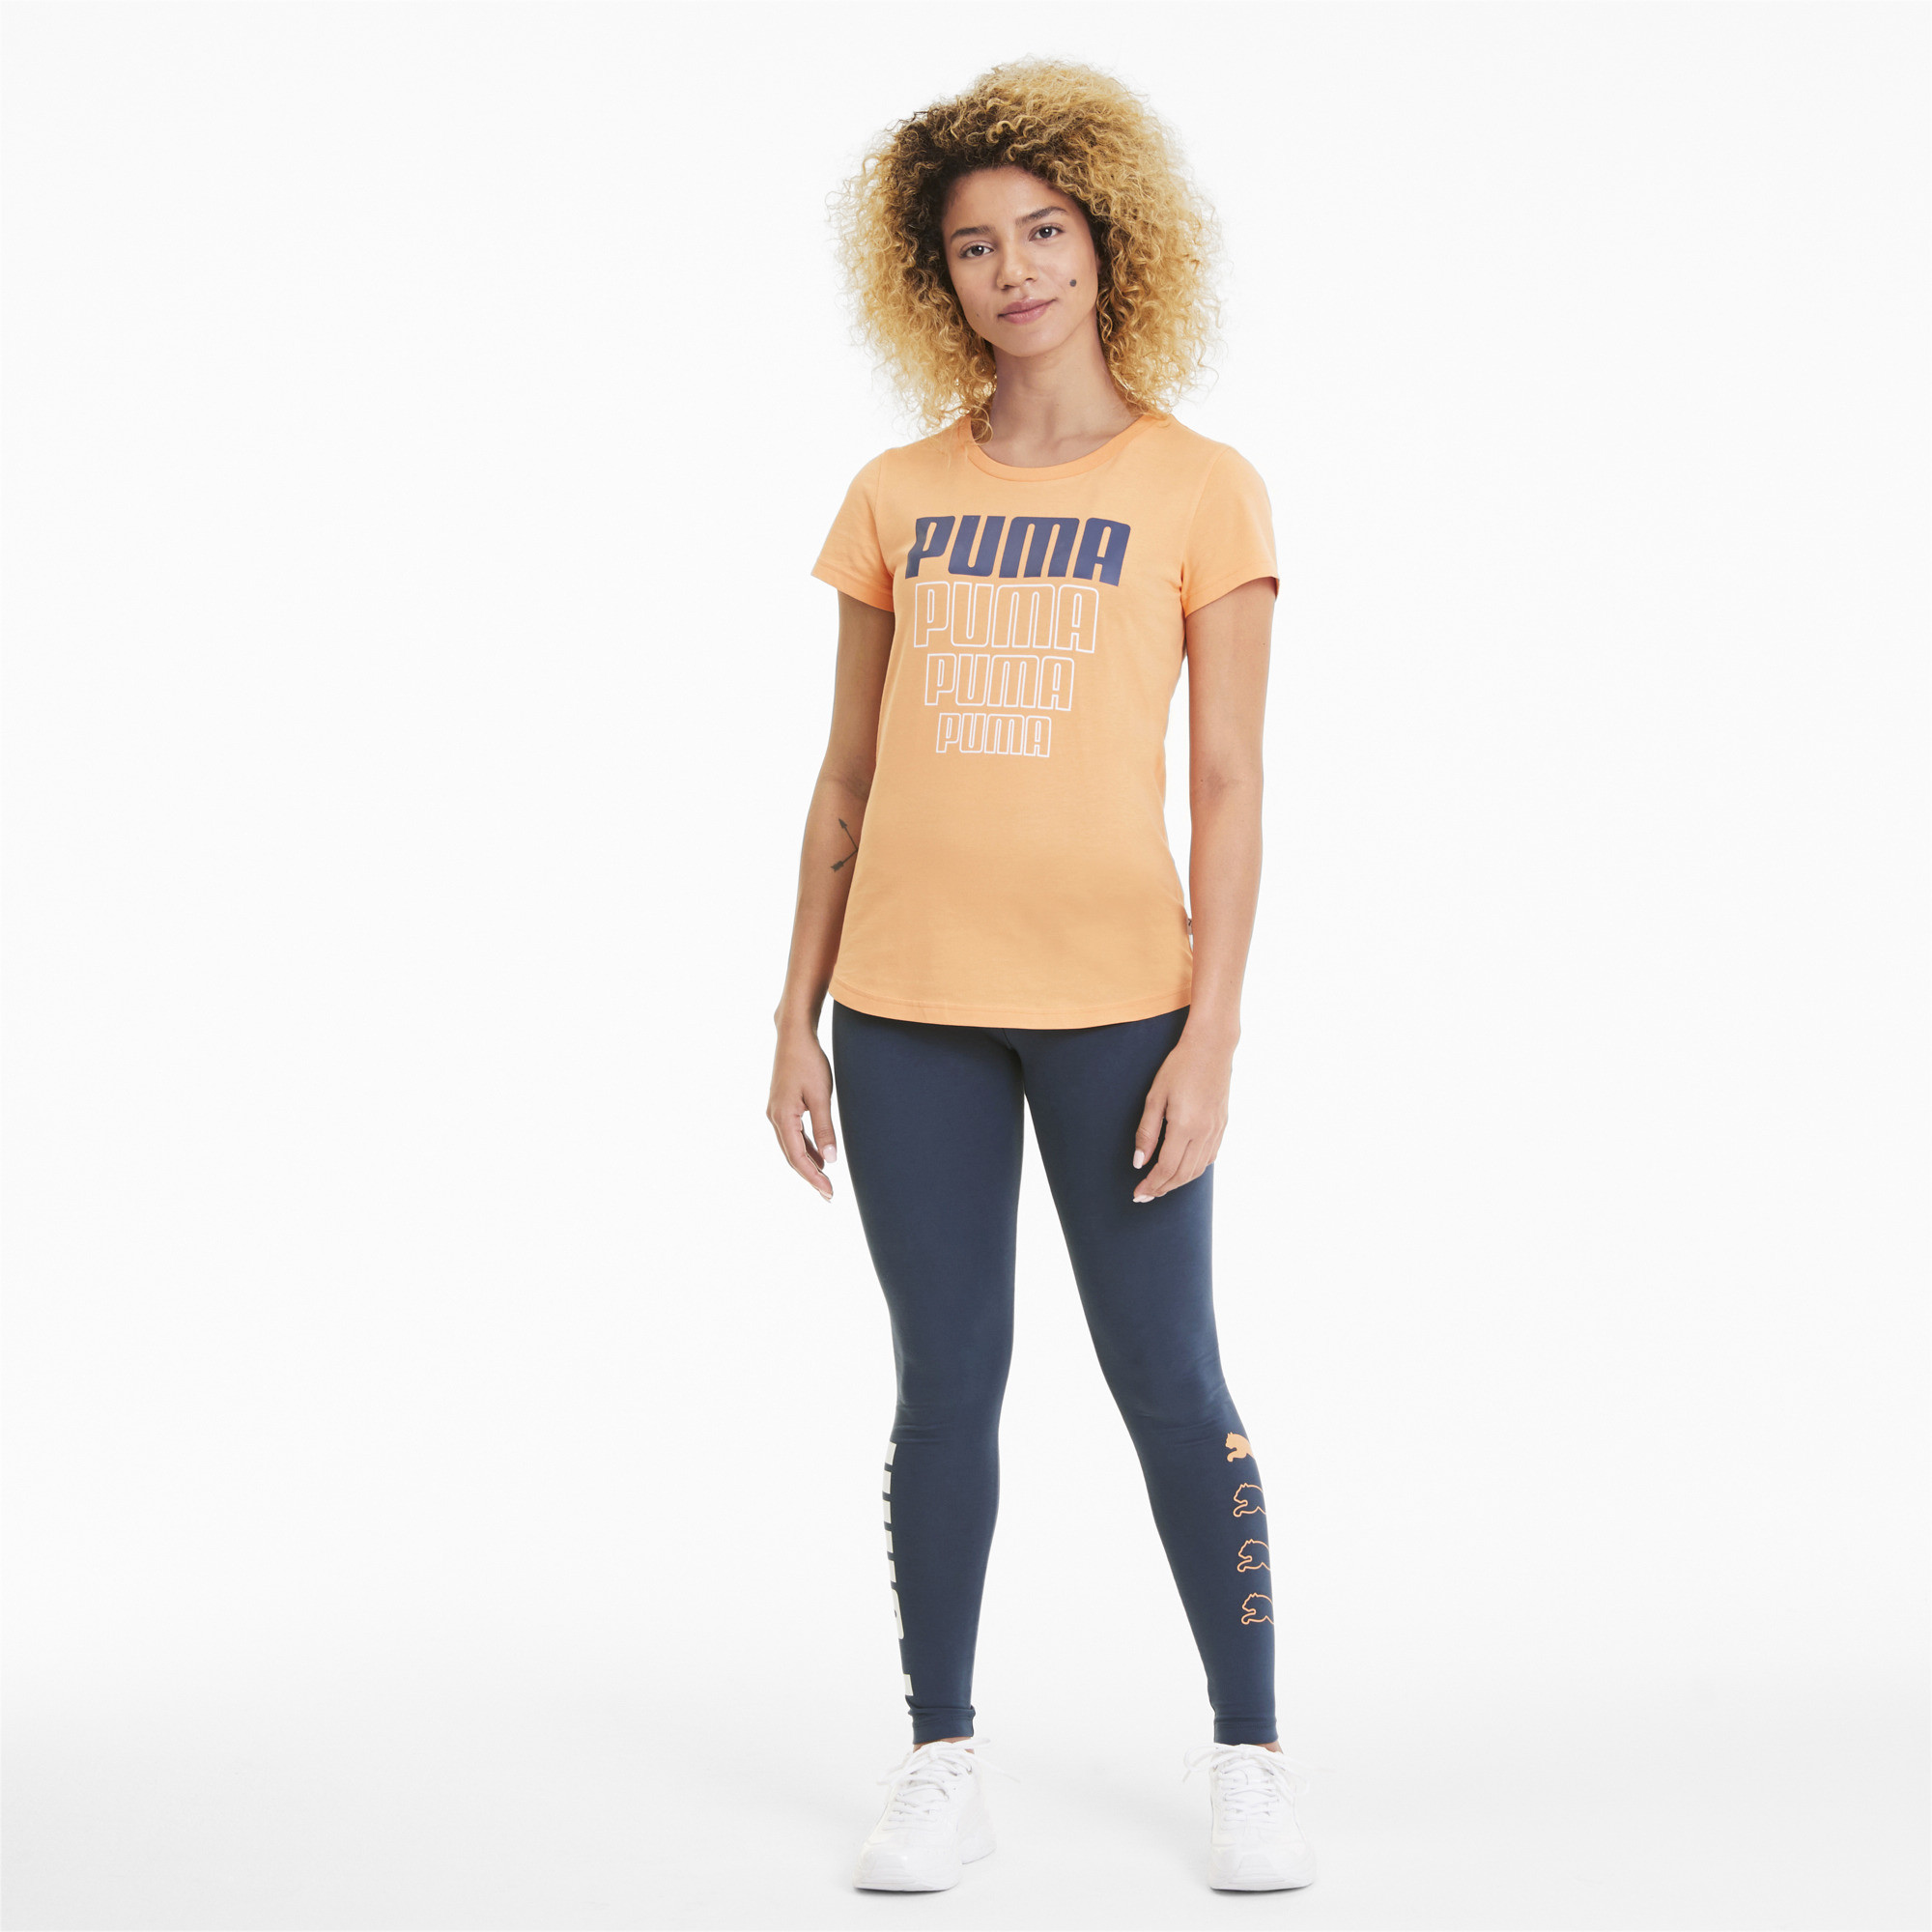 PUMA-Rebel-Women-039-s-Leggings-Women-Basics thumbnail 6